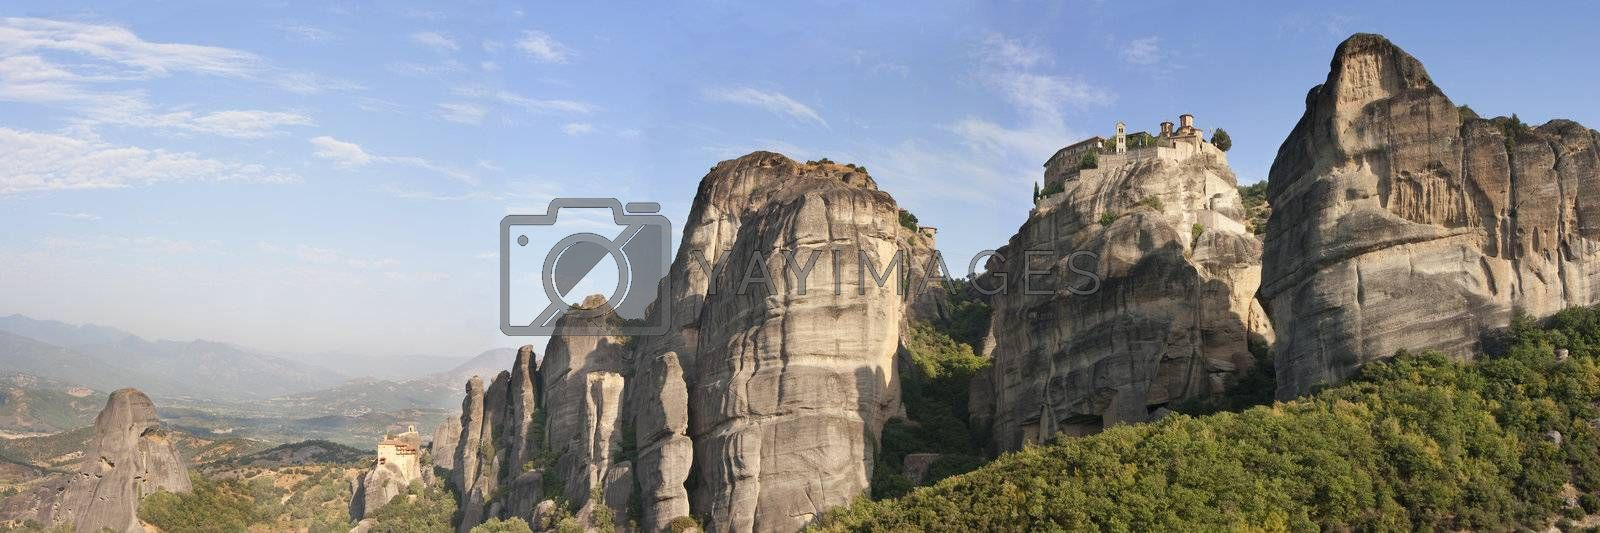 view of the meteora monasteries monuments travel destination in greece